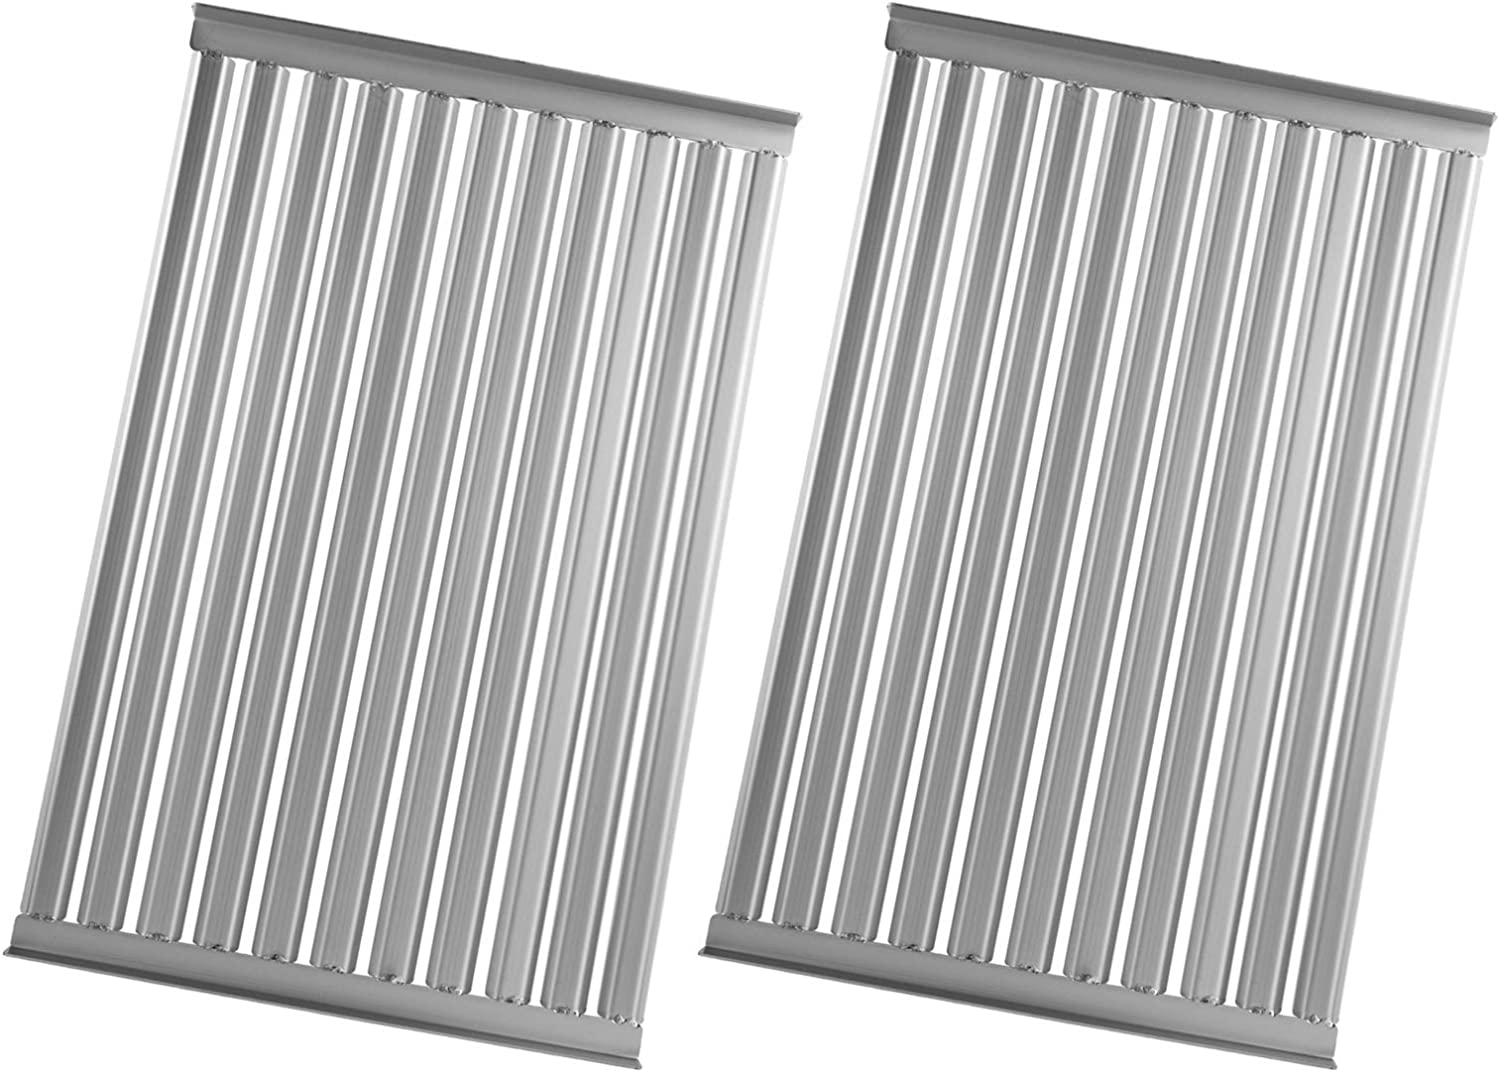 MixRBBQ 2 Pack Popular brand Stainless Steel Gas for 27-In Max 89% OFF Grill Solaire Grate